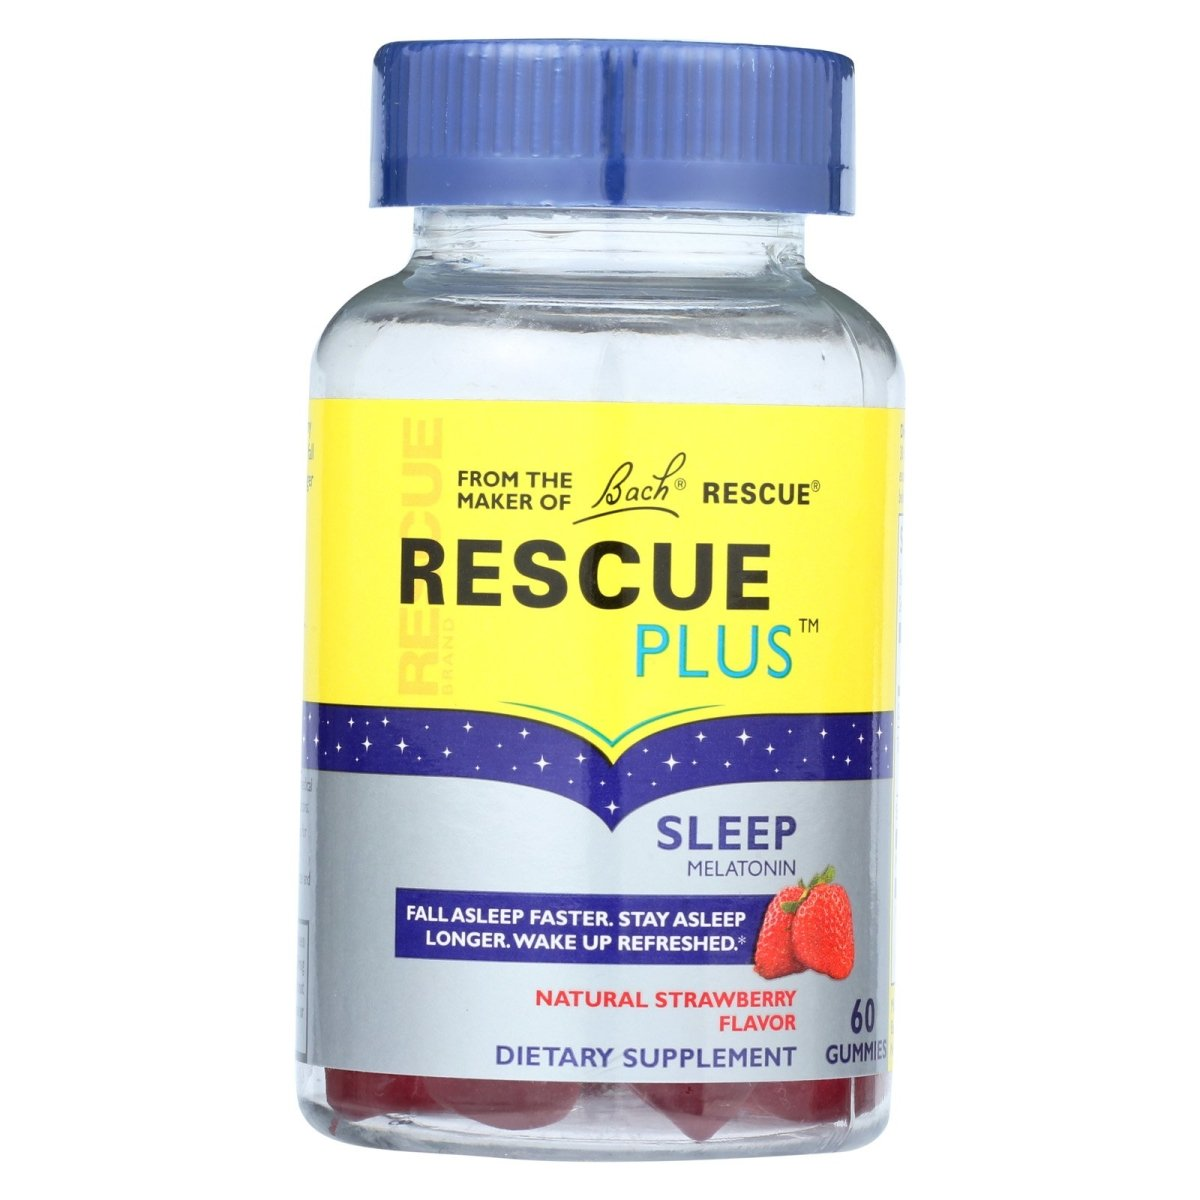 Rescue Plus - Sleep Melatonin 2500mcg 2.5mg - Natural Strawberry Gummy - 60 Gummy